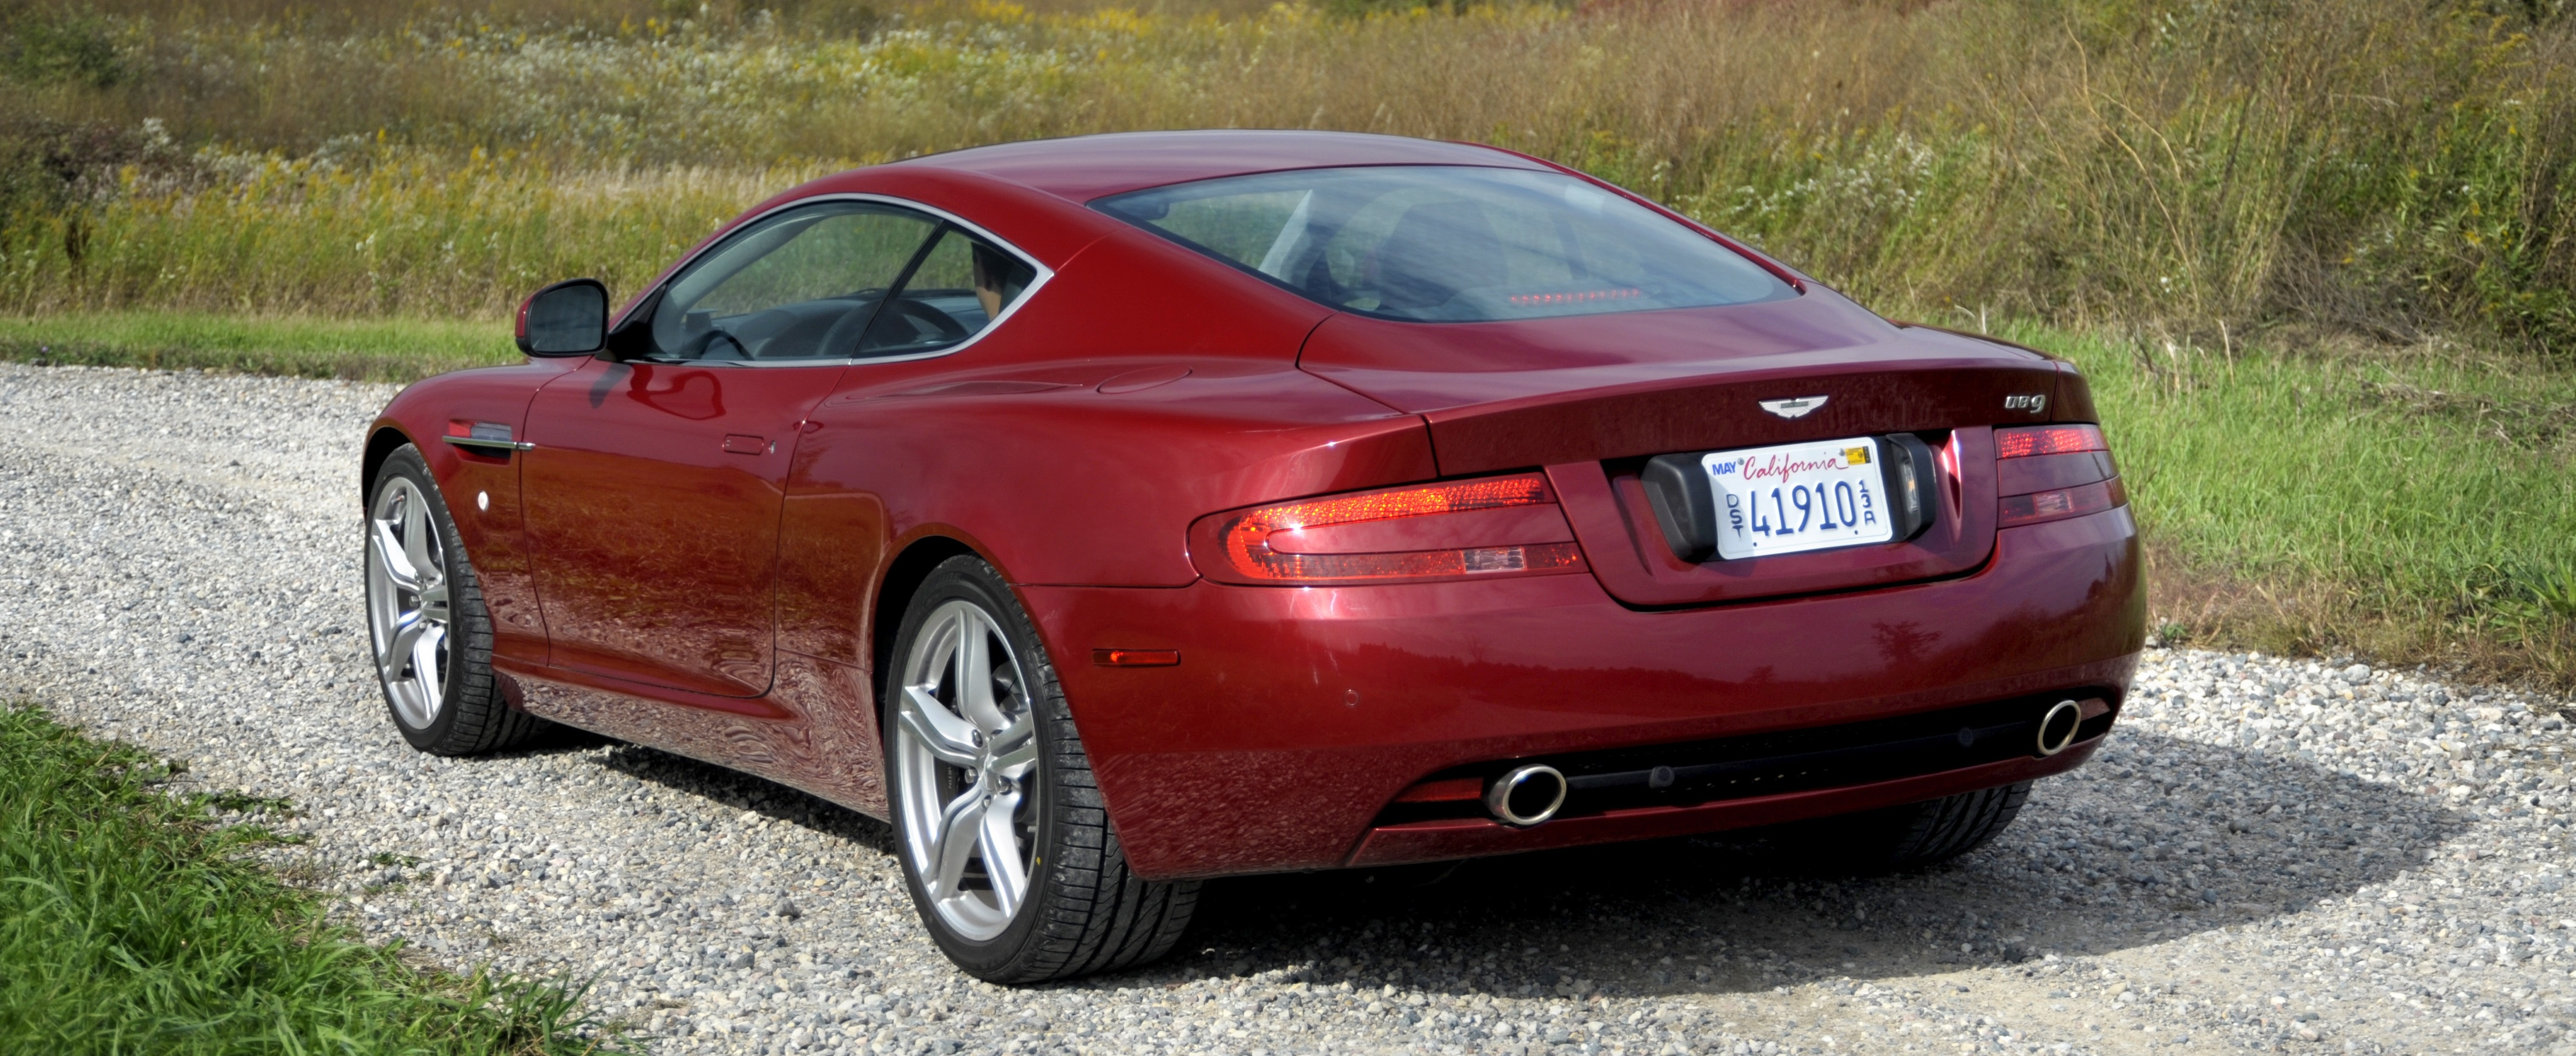 The 1 760 kg db9 coup is no flyweight sports car its ride is relatively firm but that means controlled body motions and balanced cornering